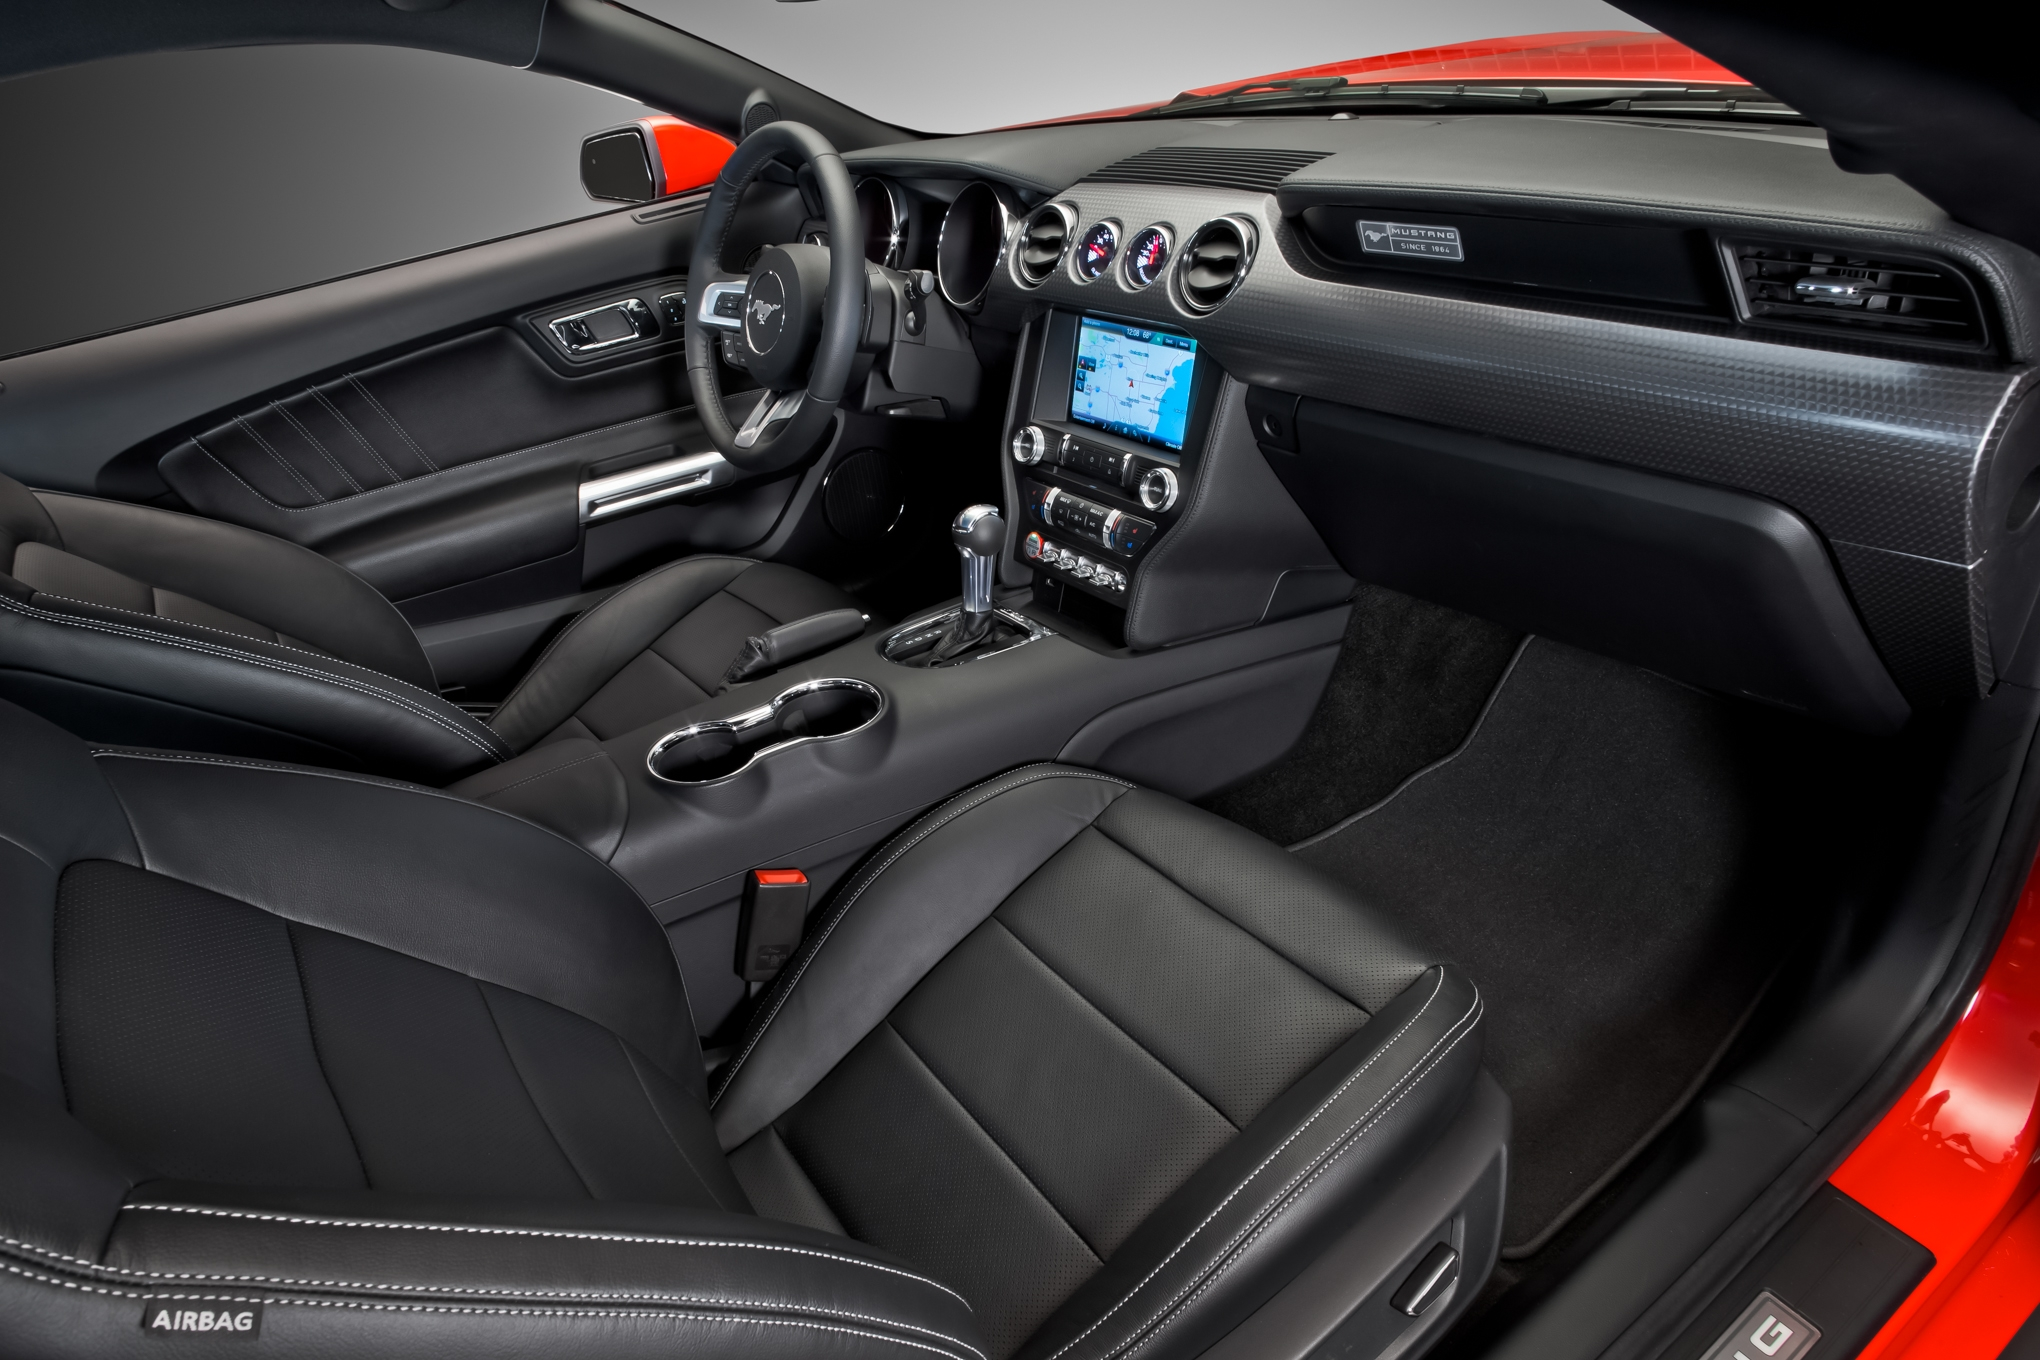 2015 Ford Mustang Special 50th Anniversary Front Seat Interior (Photo 28 of 30)